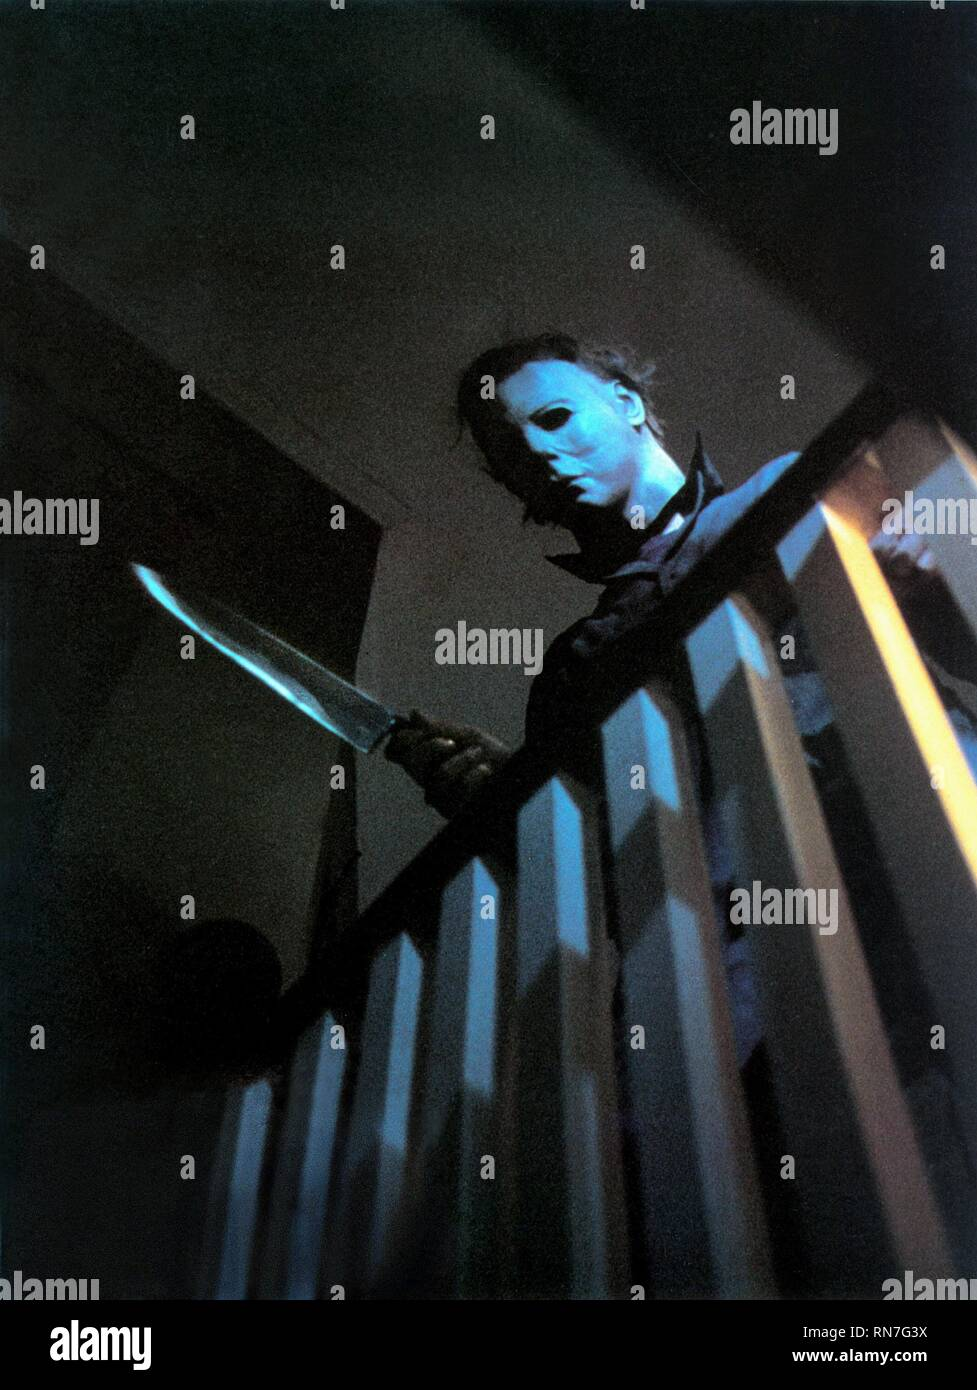 Halloween 1978 Wallpaper.Halloween 1978 Film High Resolution Stock Photography And Images Alamy